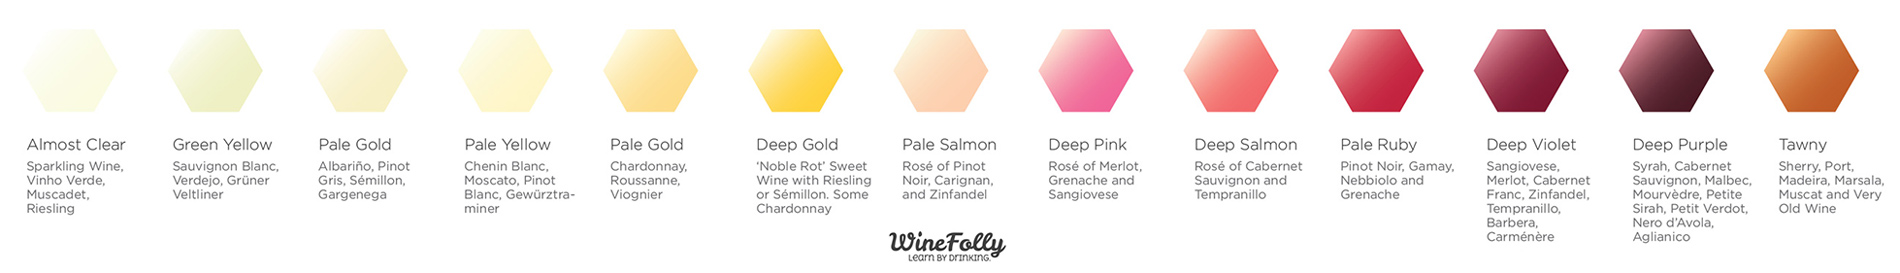 color-of-wine-tasting-guide